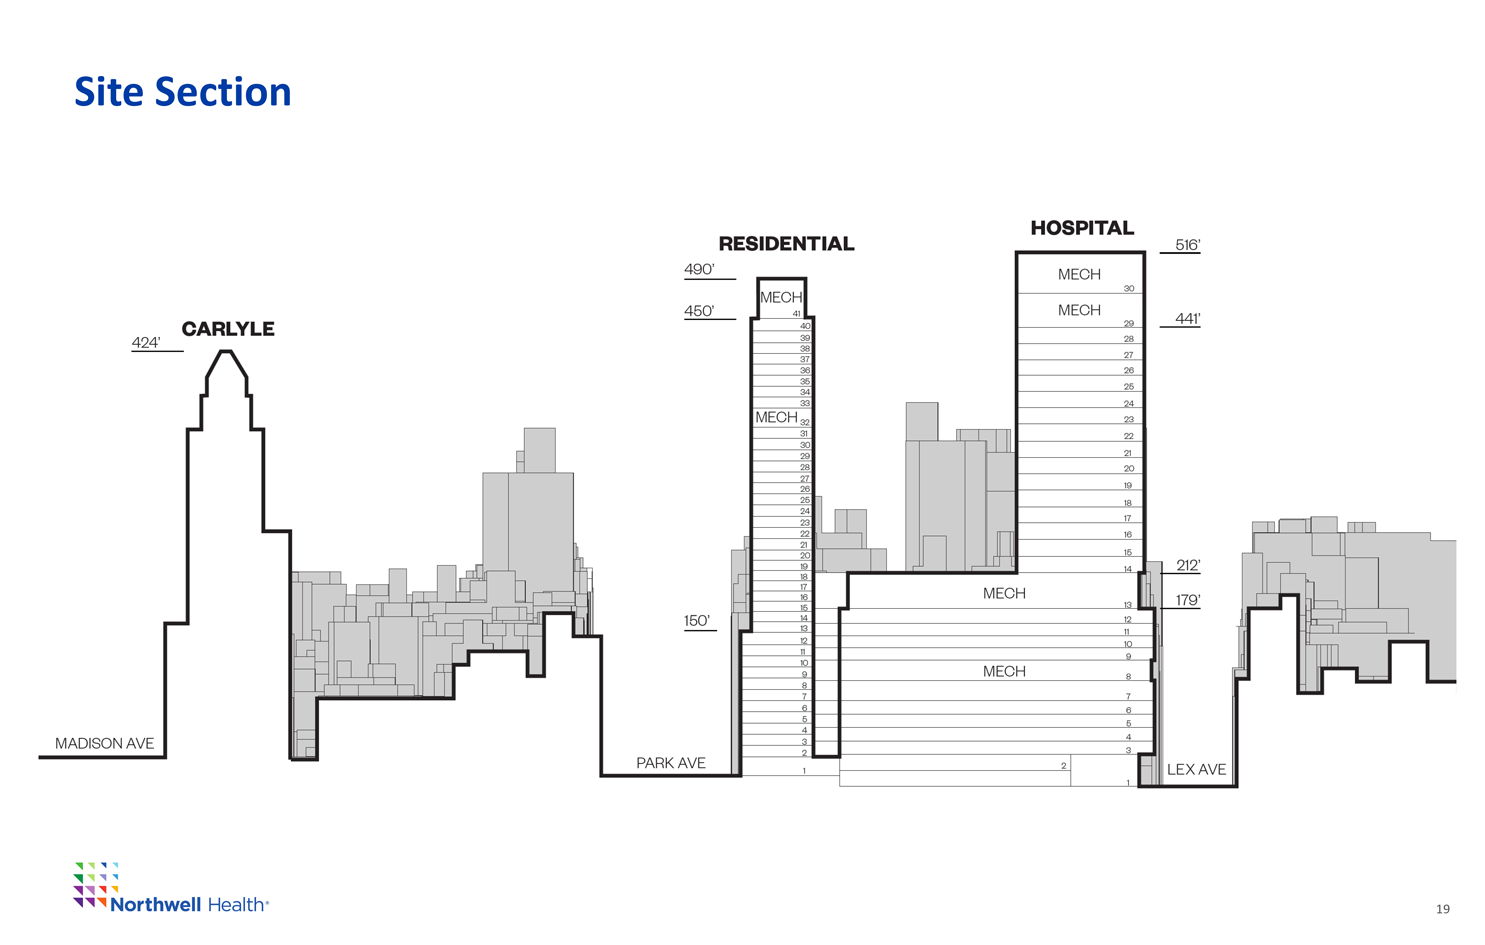 Size of Buildings